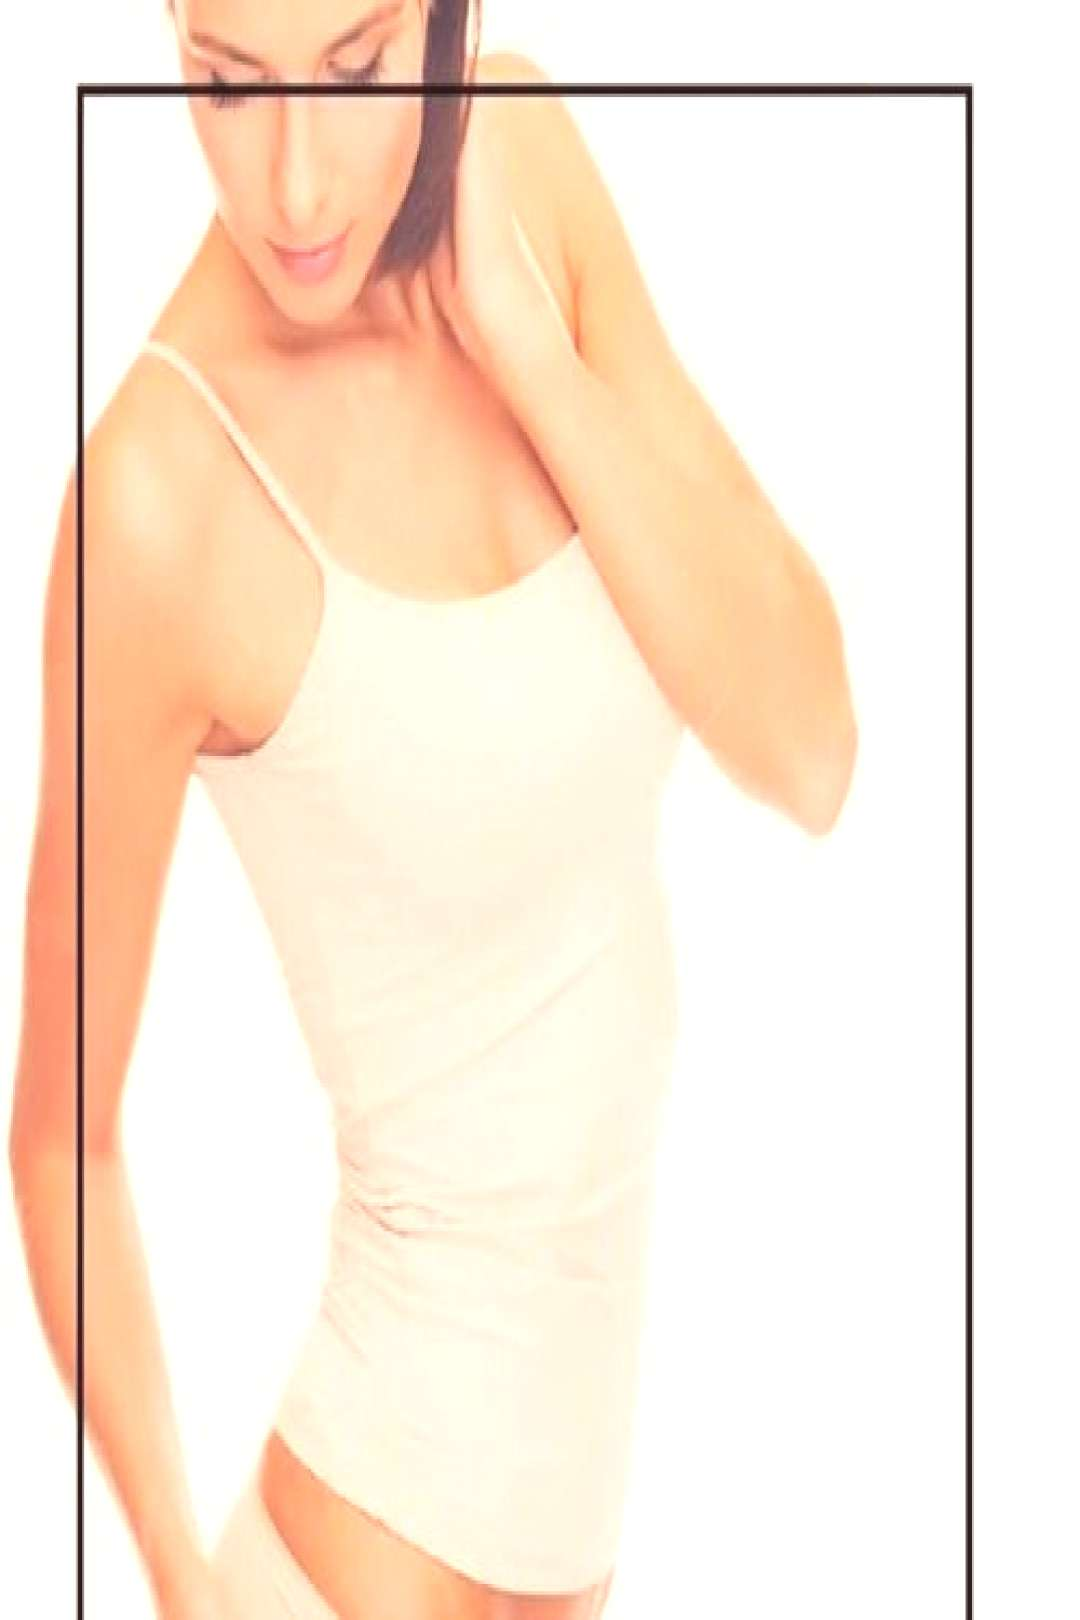 Non-Surgical Body Contouring Treatment is available at Dubai Cosmetic Surgery Clinic. You can get a